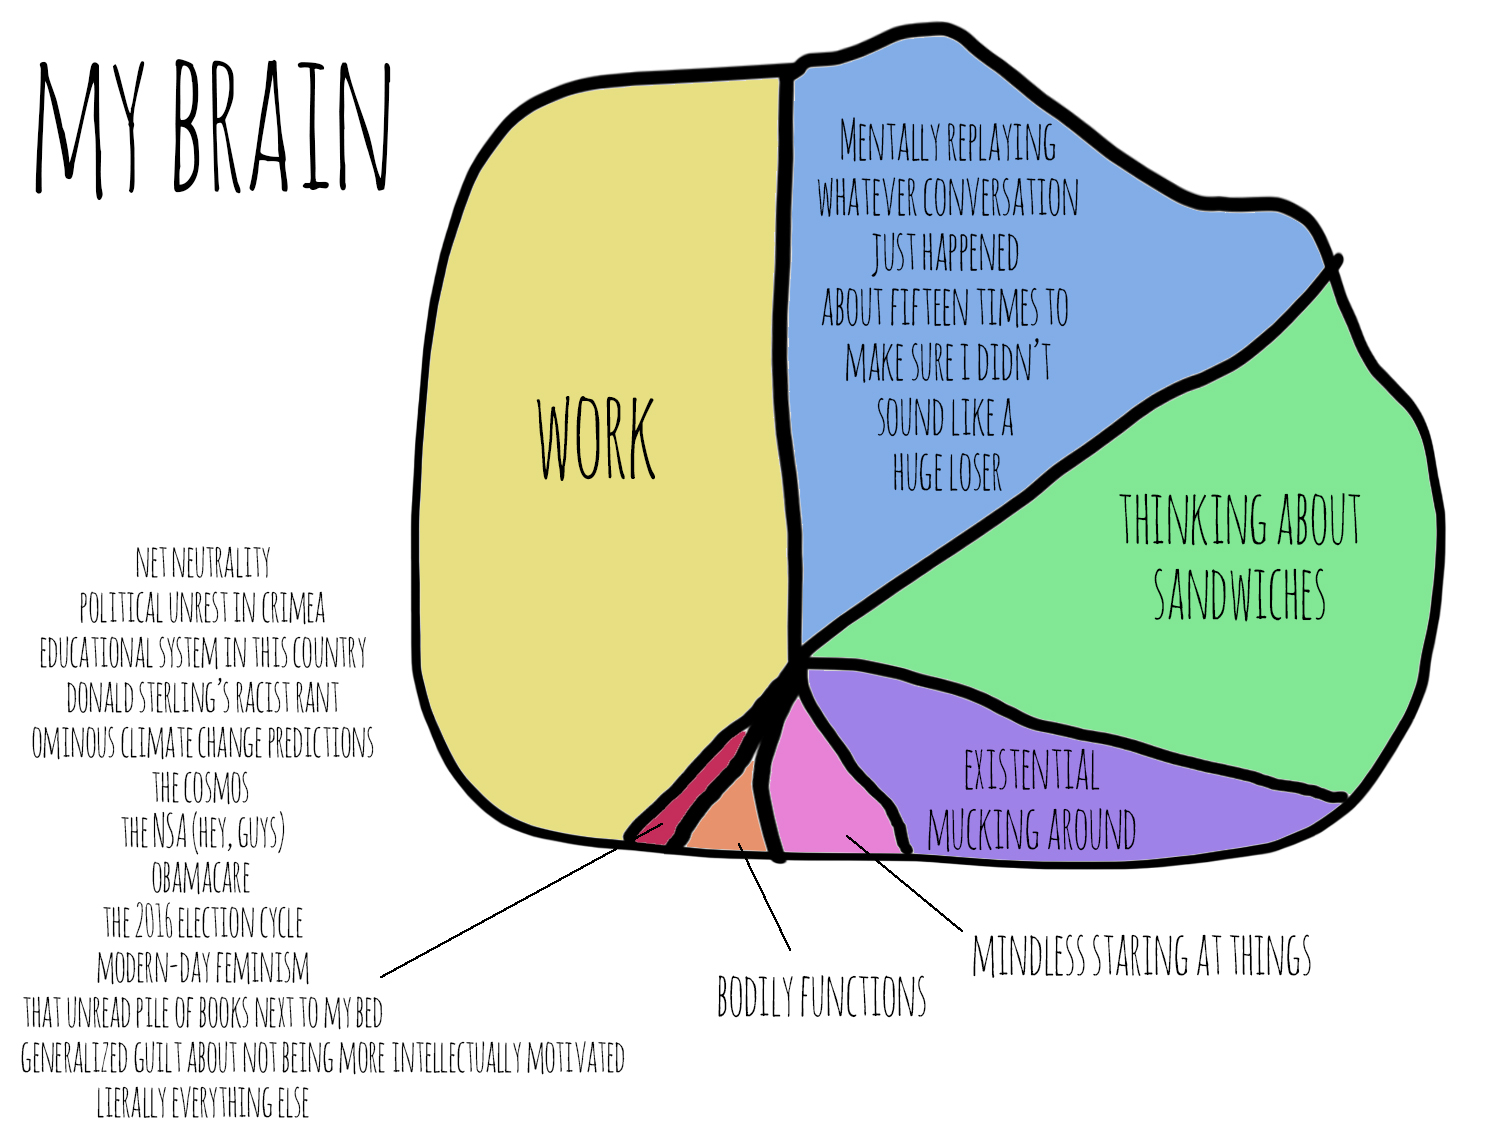 What your brain looks like